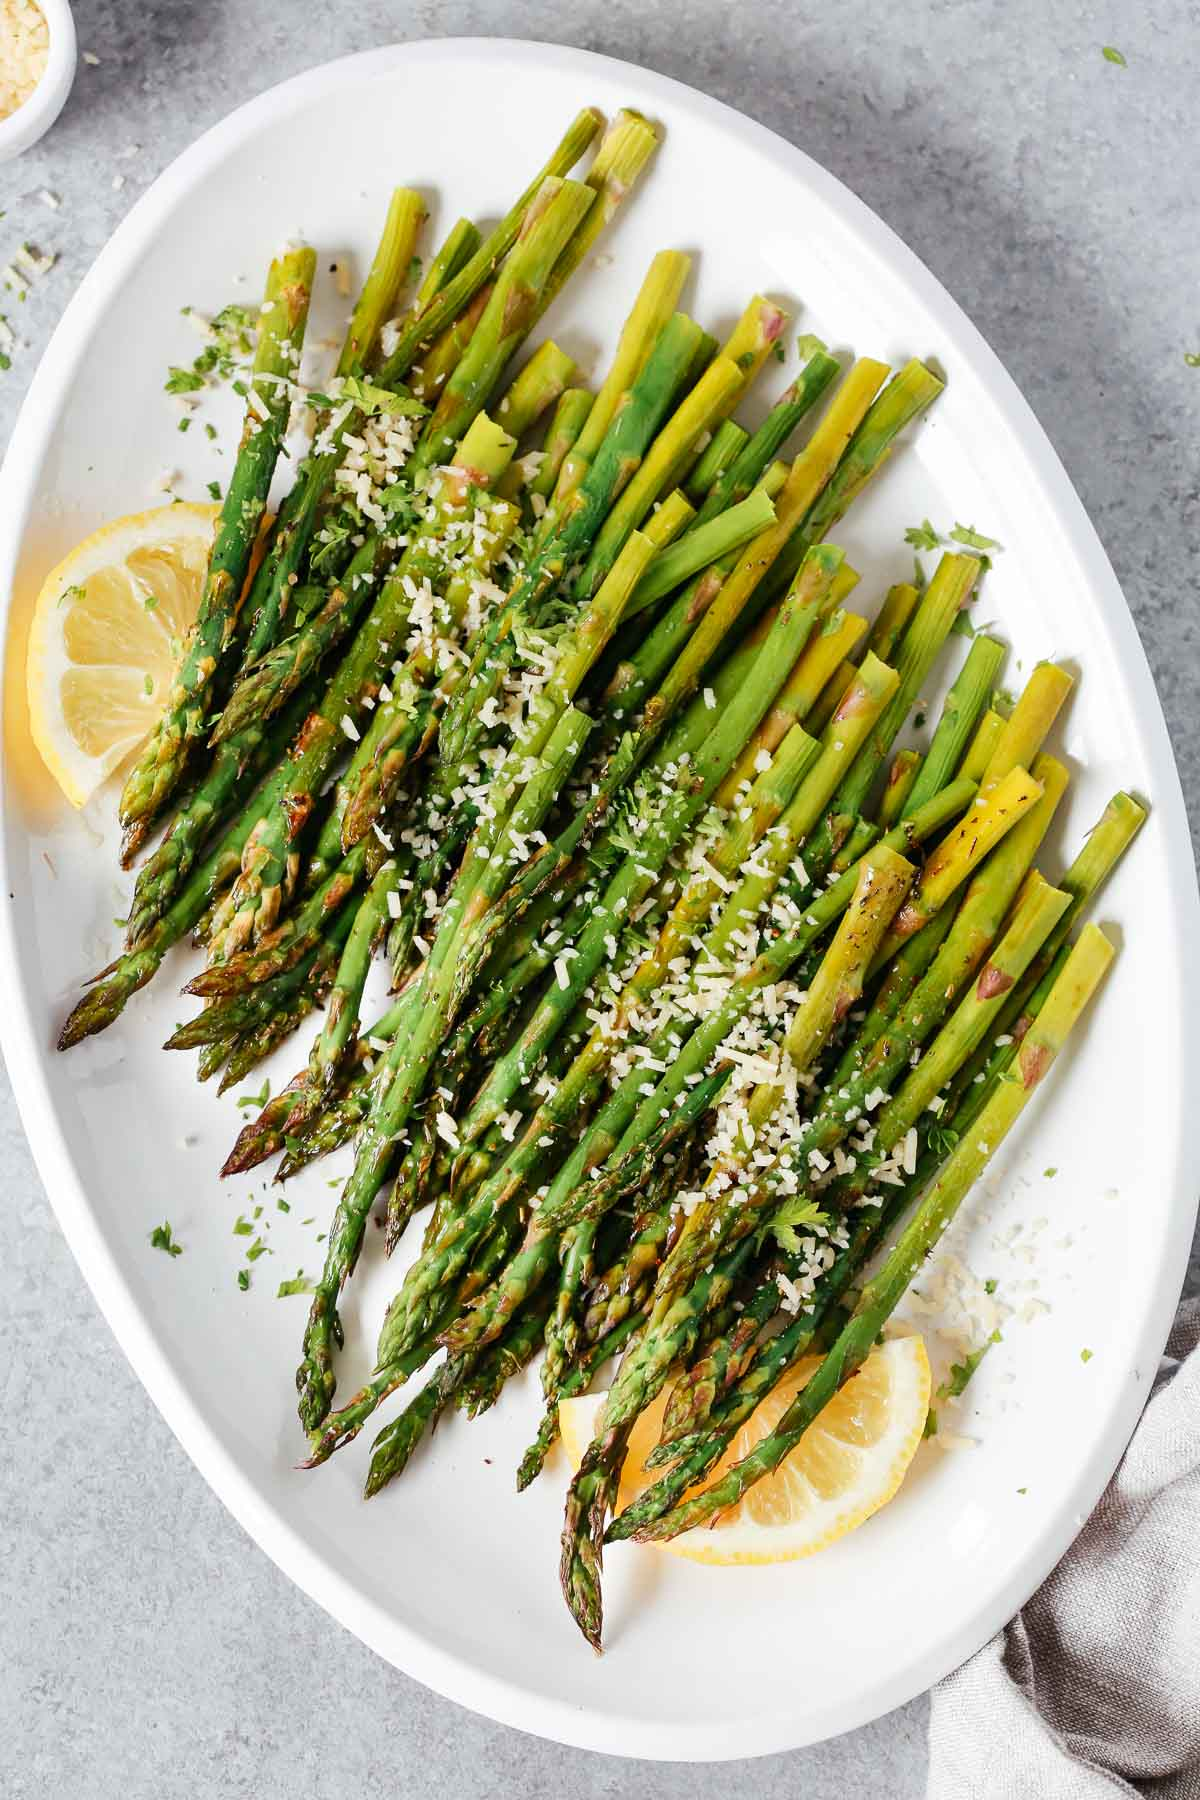 Roasted asparagus on a serving platter topped with parmesan cheese and lemon wedges.